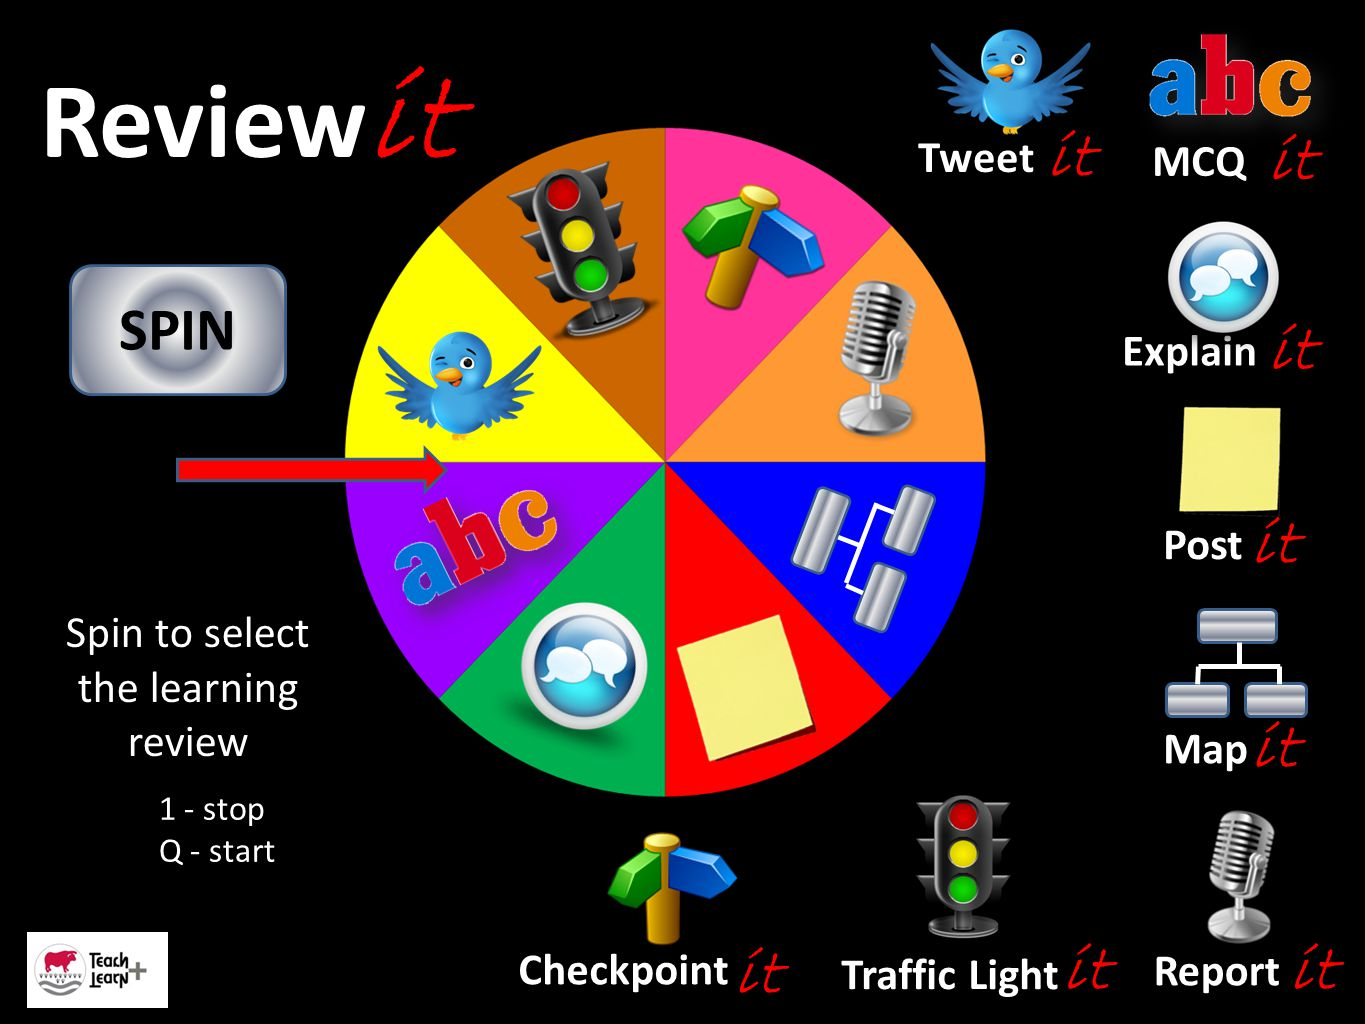 SPIN Spin to select the learning review 1 - stop Q - start Review it Tweet it MCQ it Explain it Post it Report it Traffic Light it Map it Checkpoint it